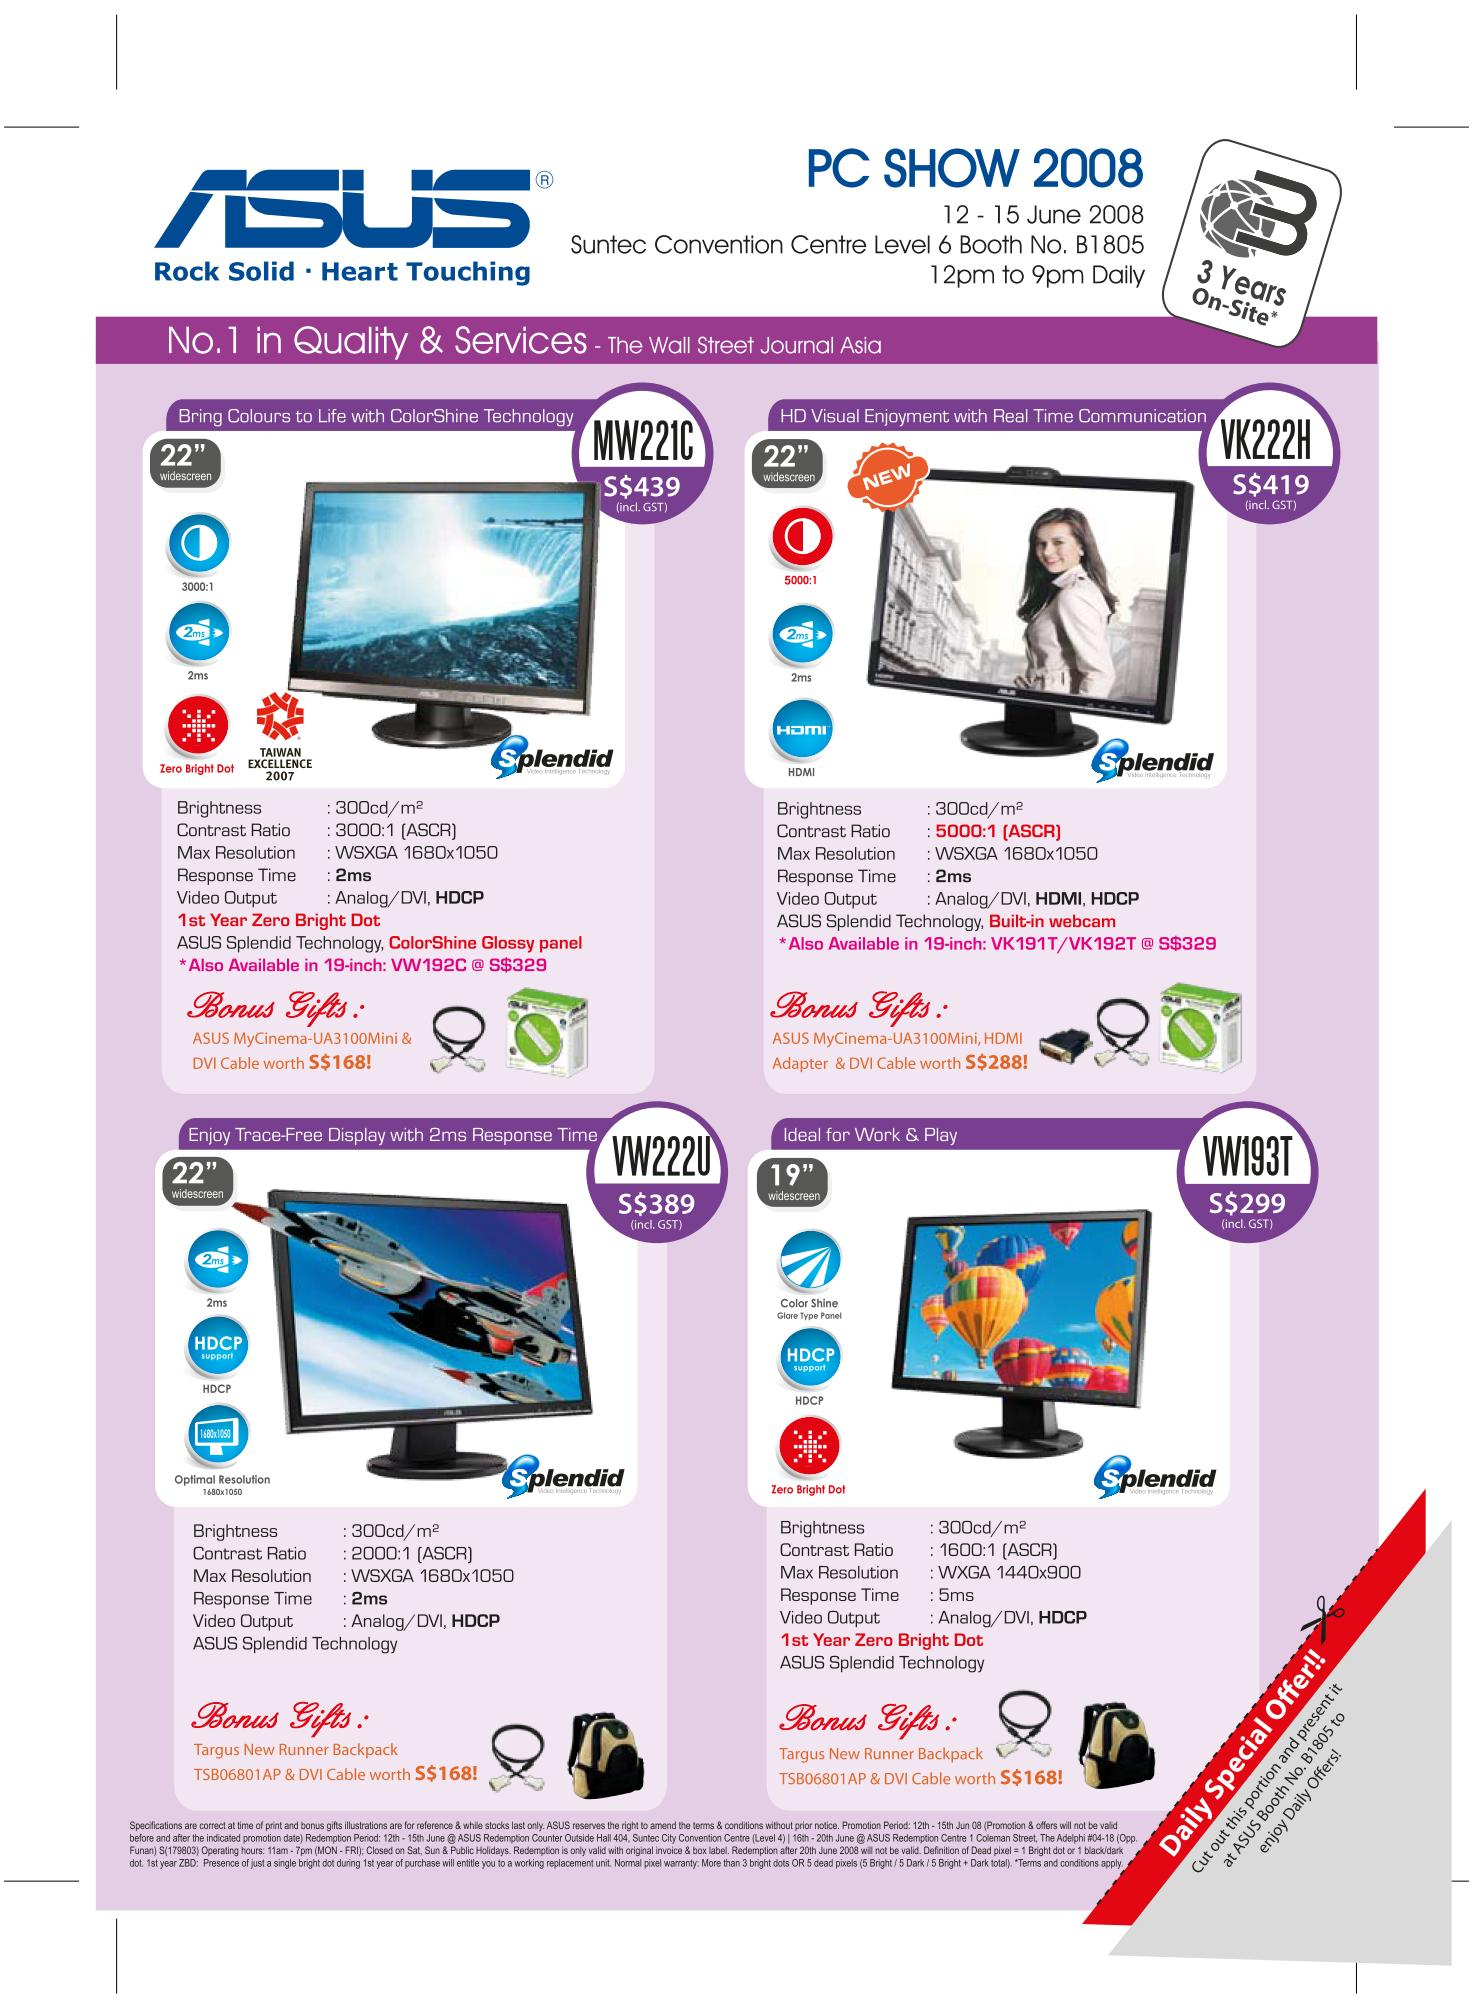 PC Show 2008 price list image brochure of Asus Lcd Front.pdf 01